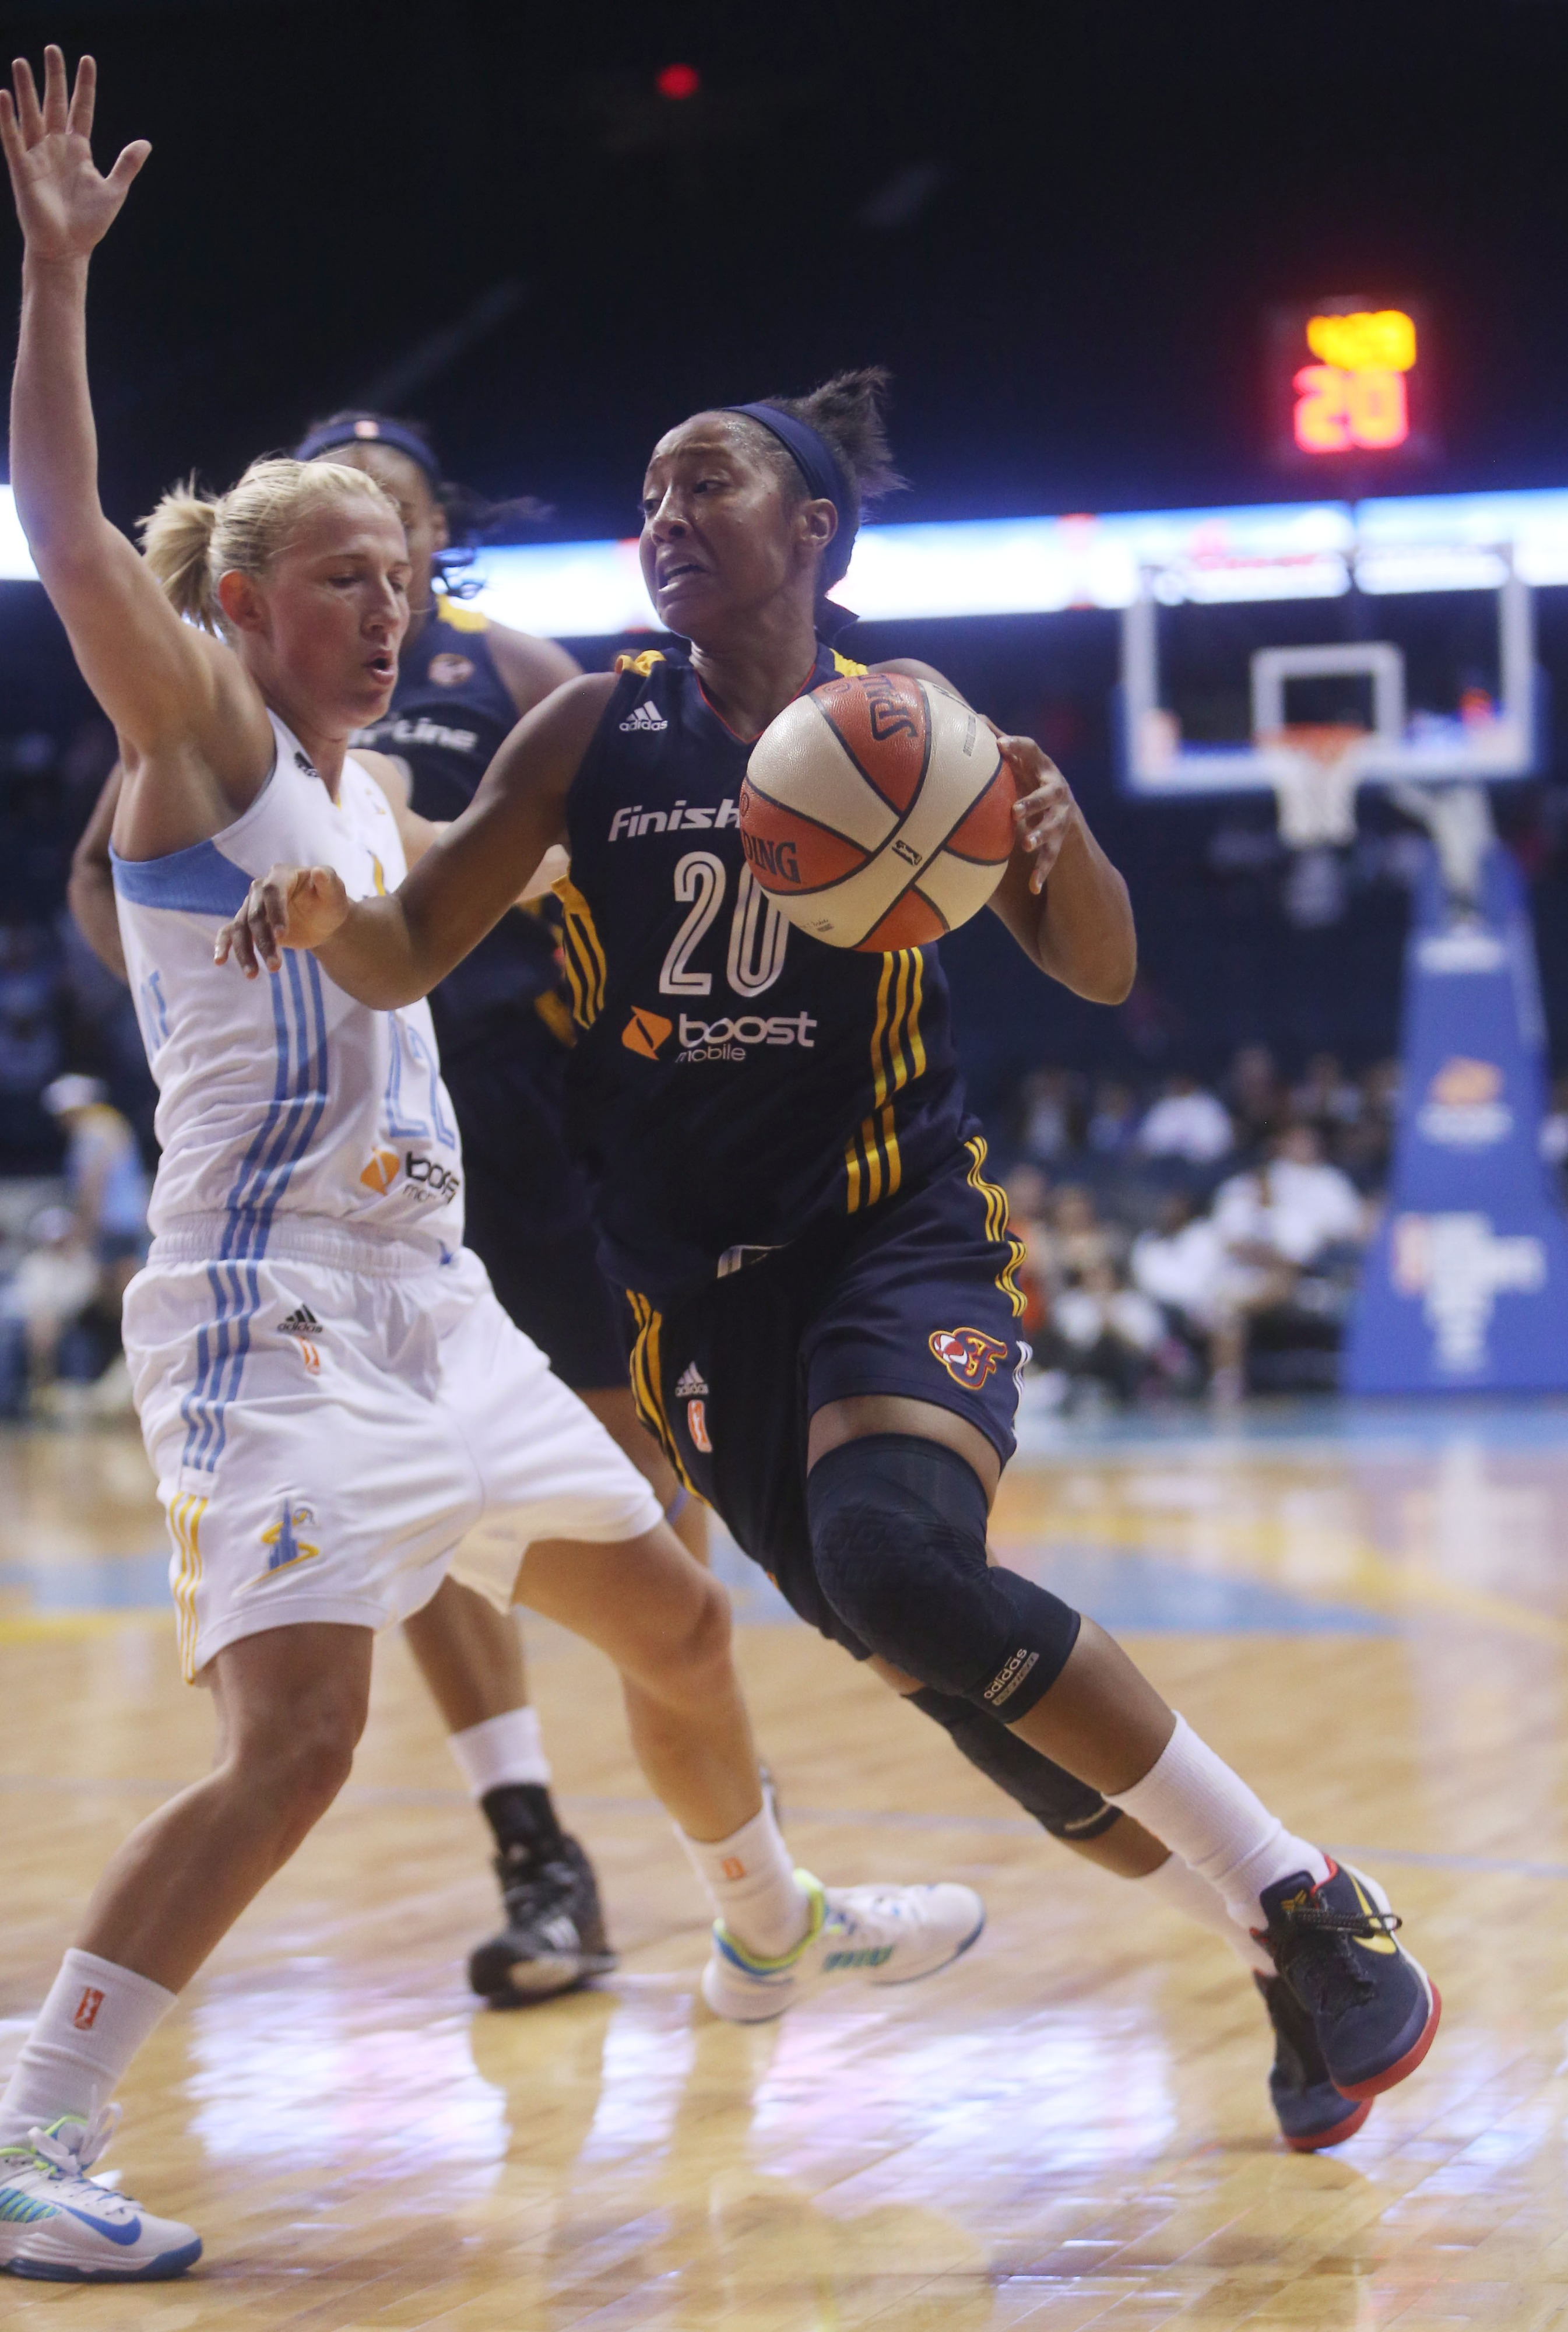 Indiana Fever point guard Briann January could be a key figure in the Eastern Conference Finals.